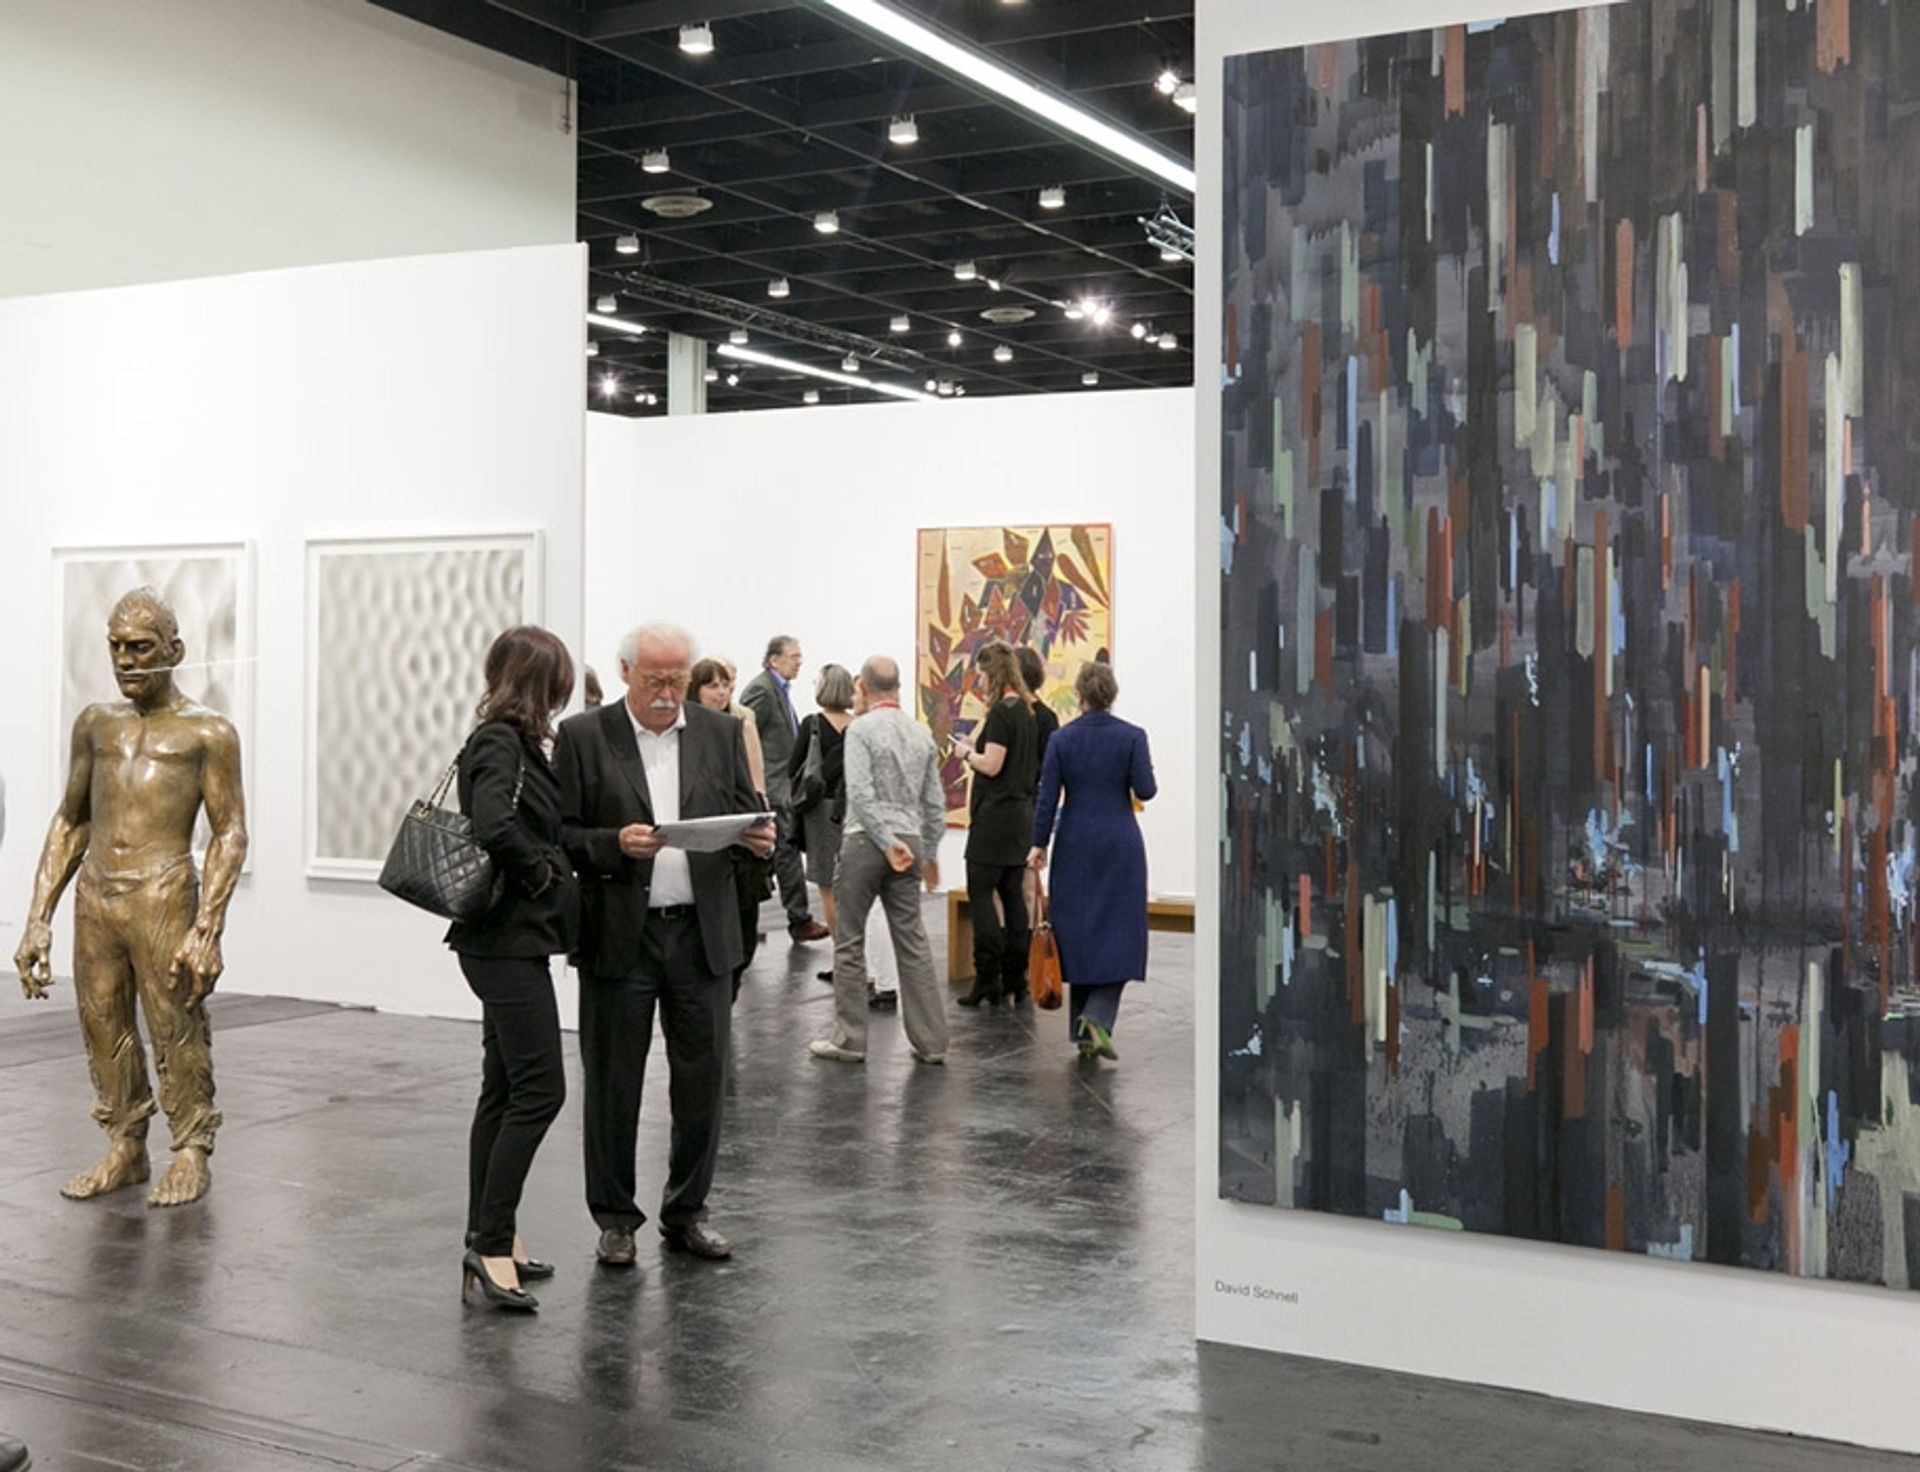 Cologne's ban of events with more than 1,000 people until 10 April led us to the postponement of the city's art fair © Koelnmesse